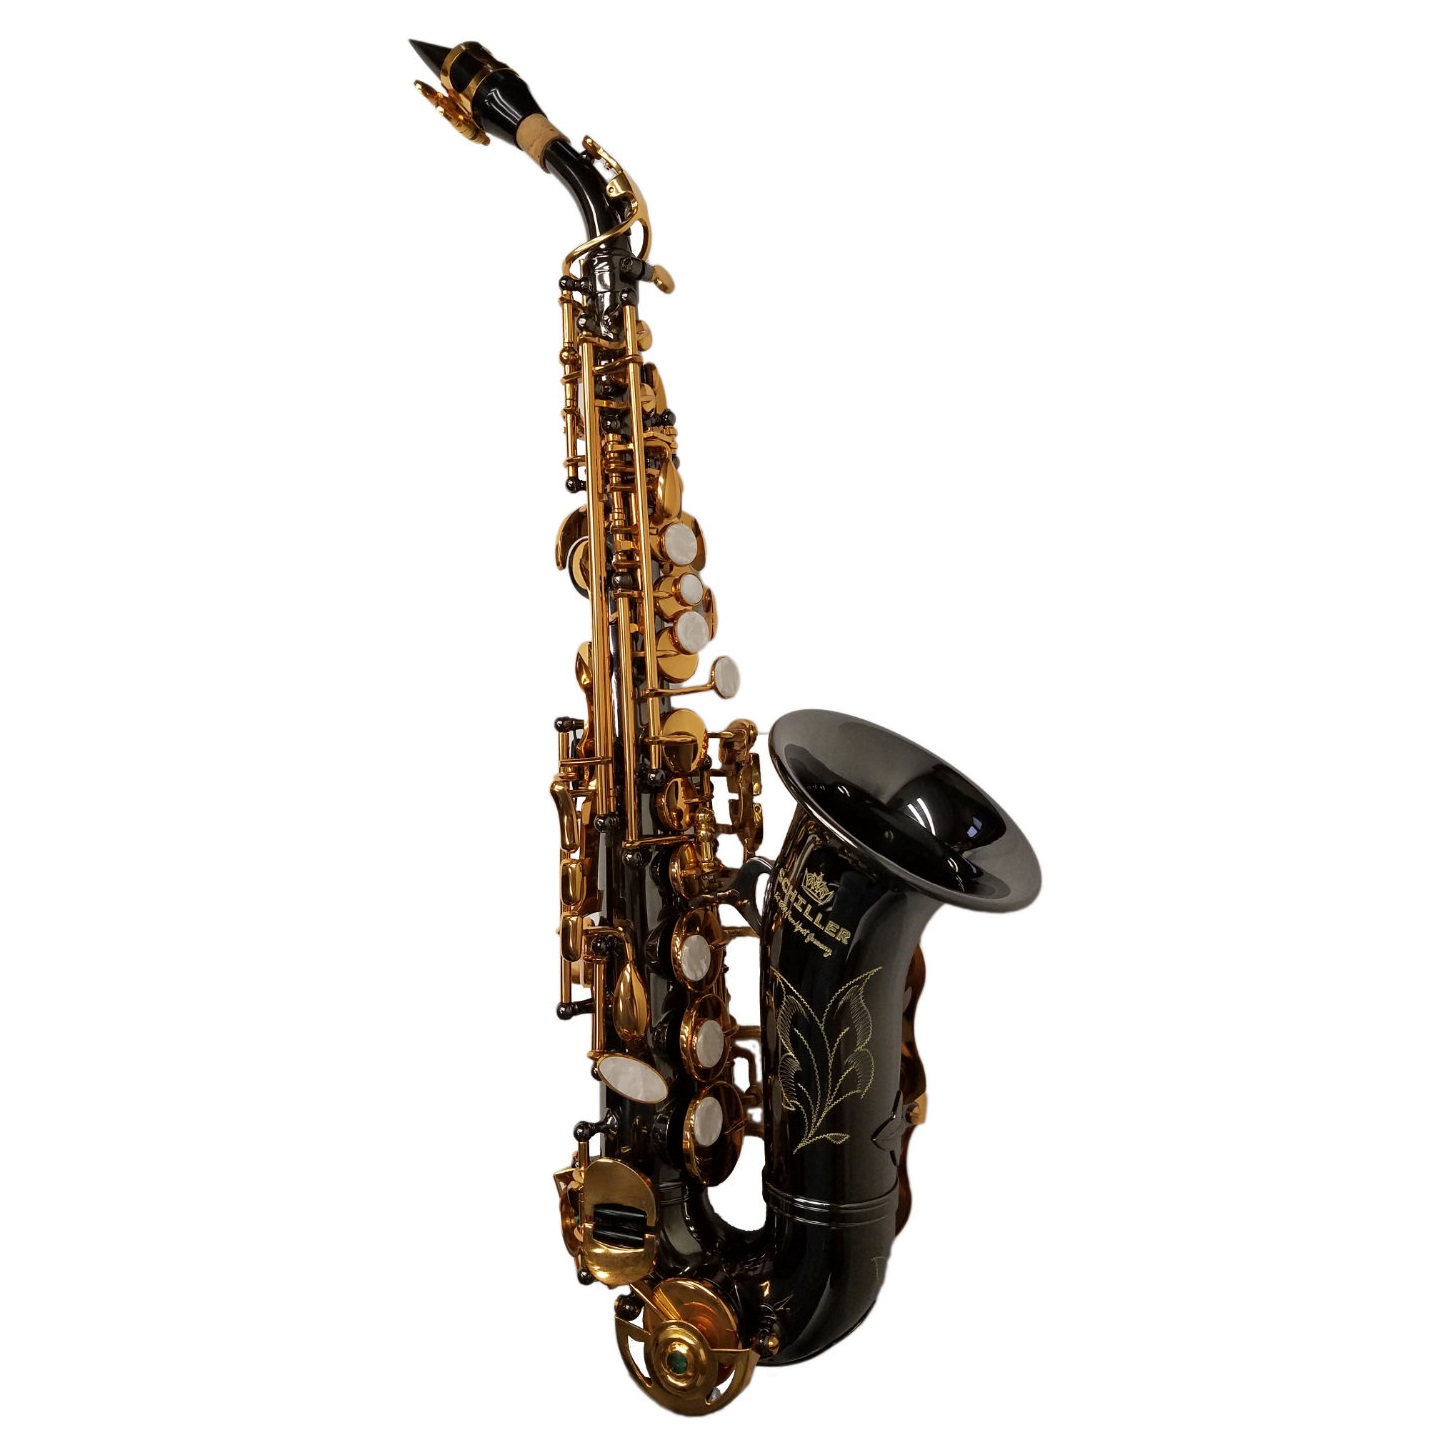 American Heritage 400 Curved Soprano Saxophone – Black & Gold